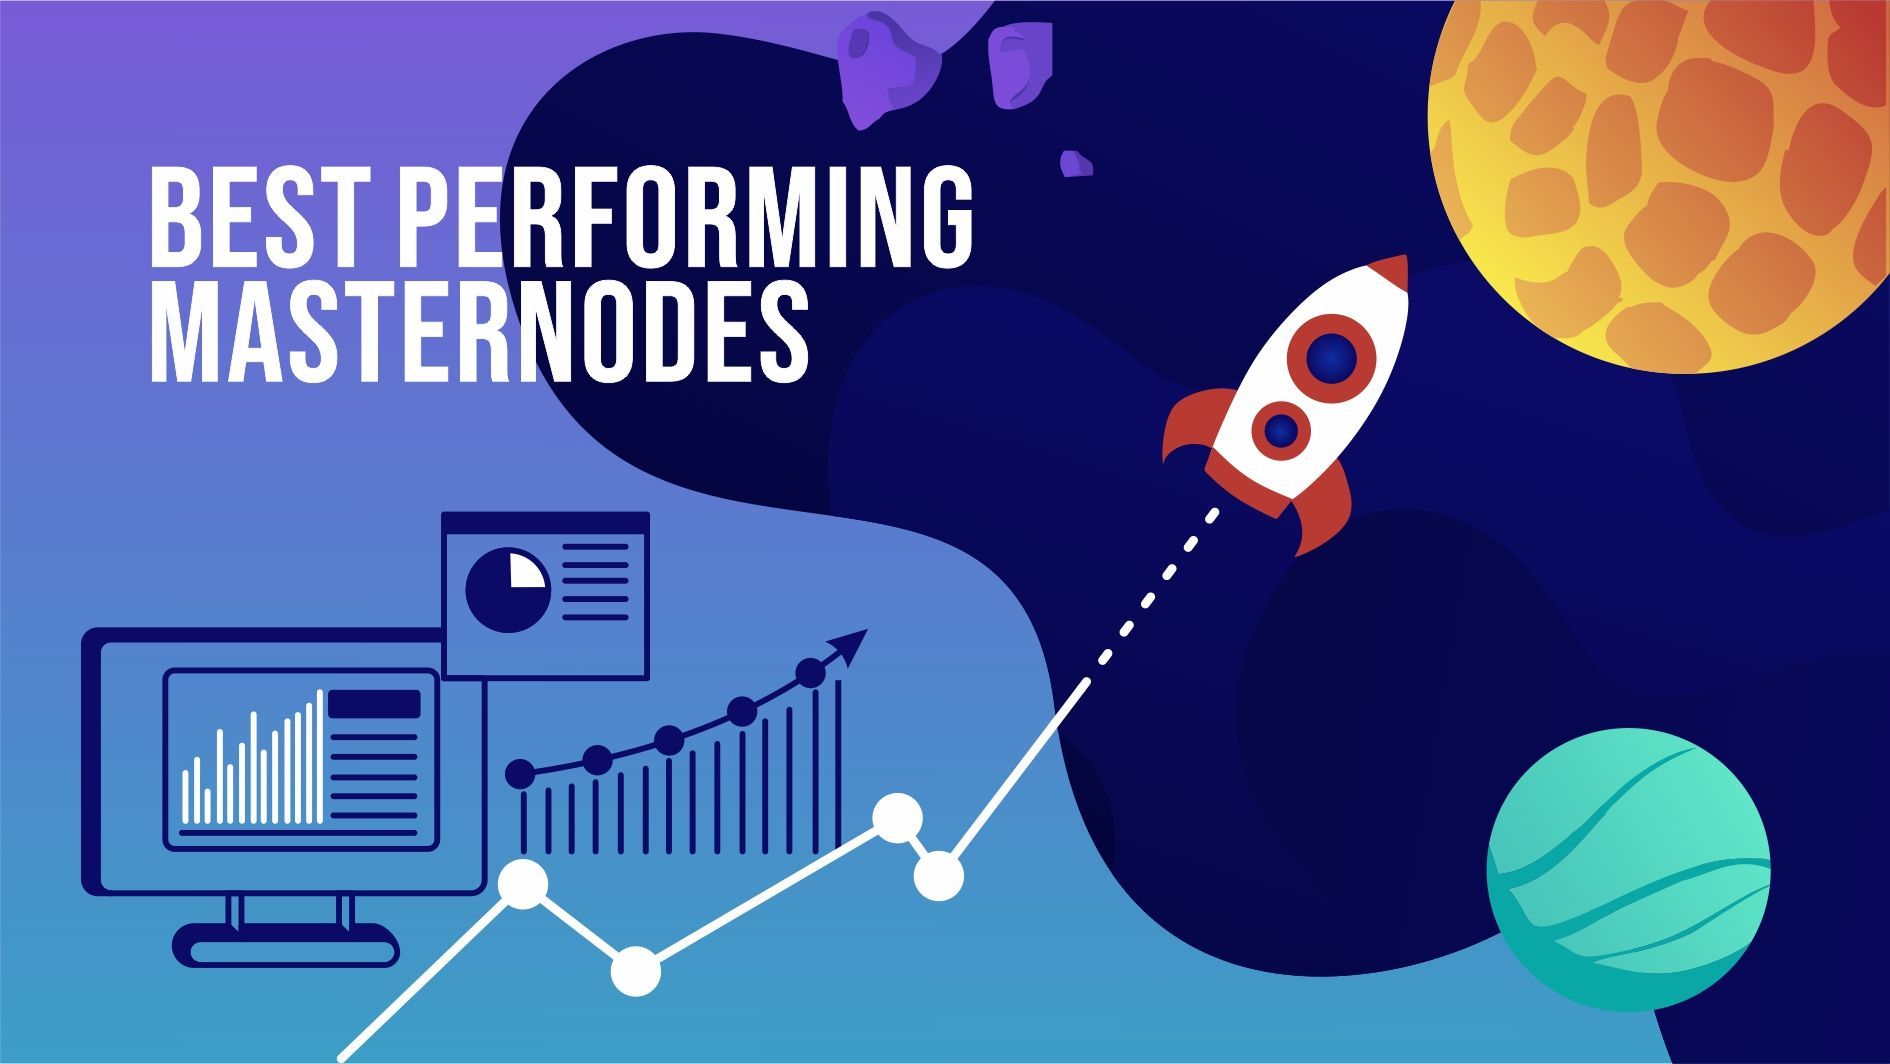 Best Performing Masternodes #Week14